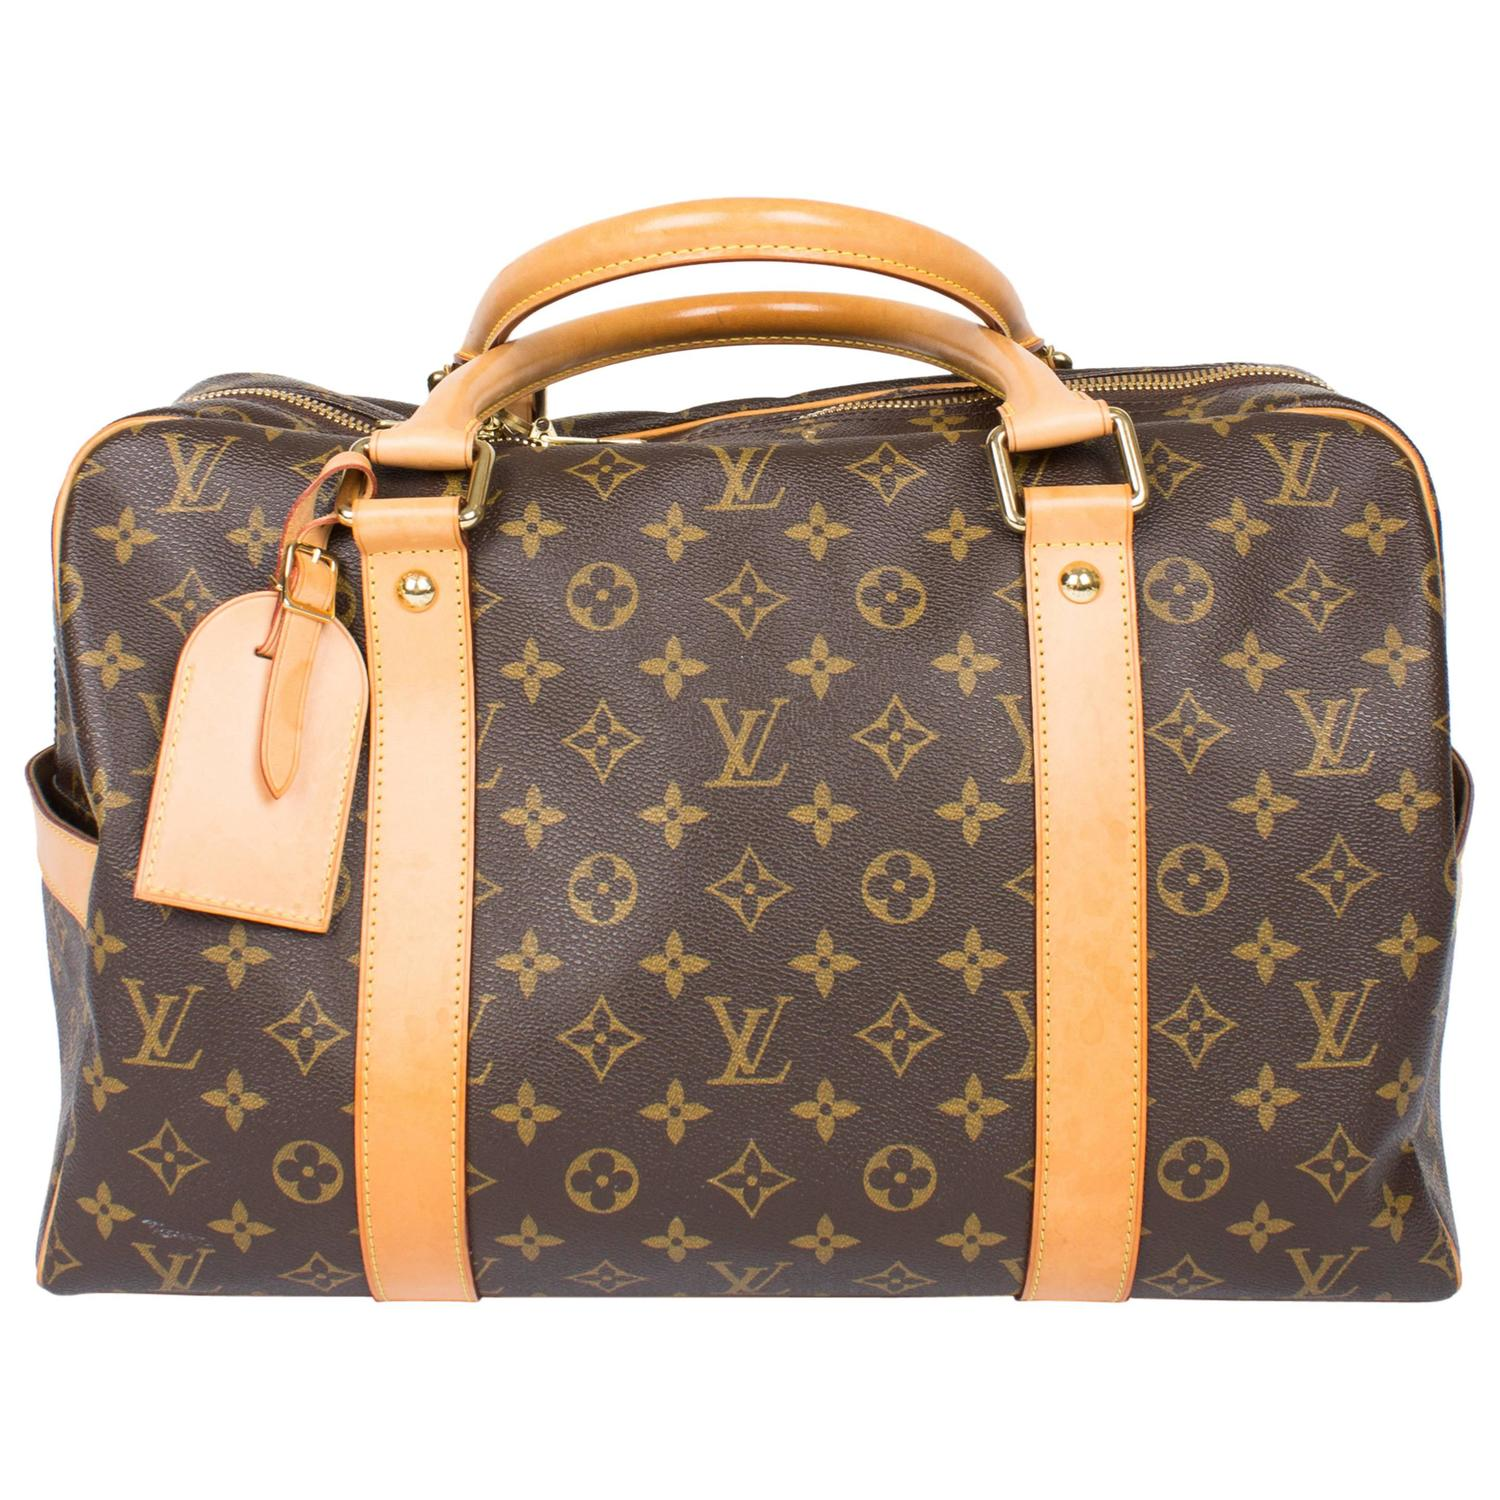 louis vuitton carry all weekend bag brown canvas beige leather for sale at 1stdibs. Black Bedroom Furniture Sets. Home Design Ideas